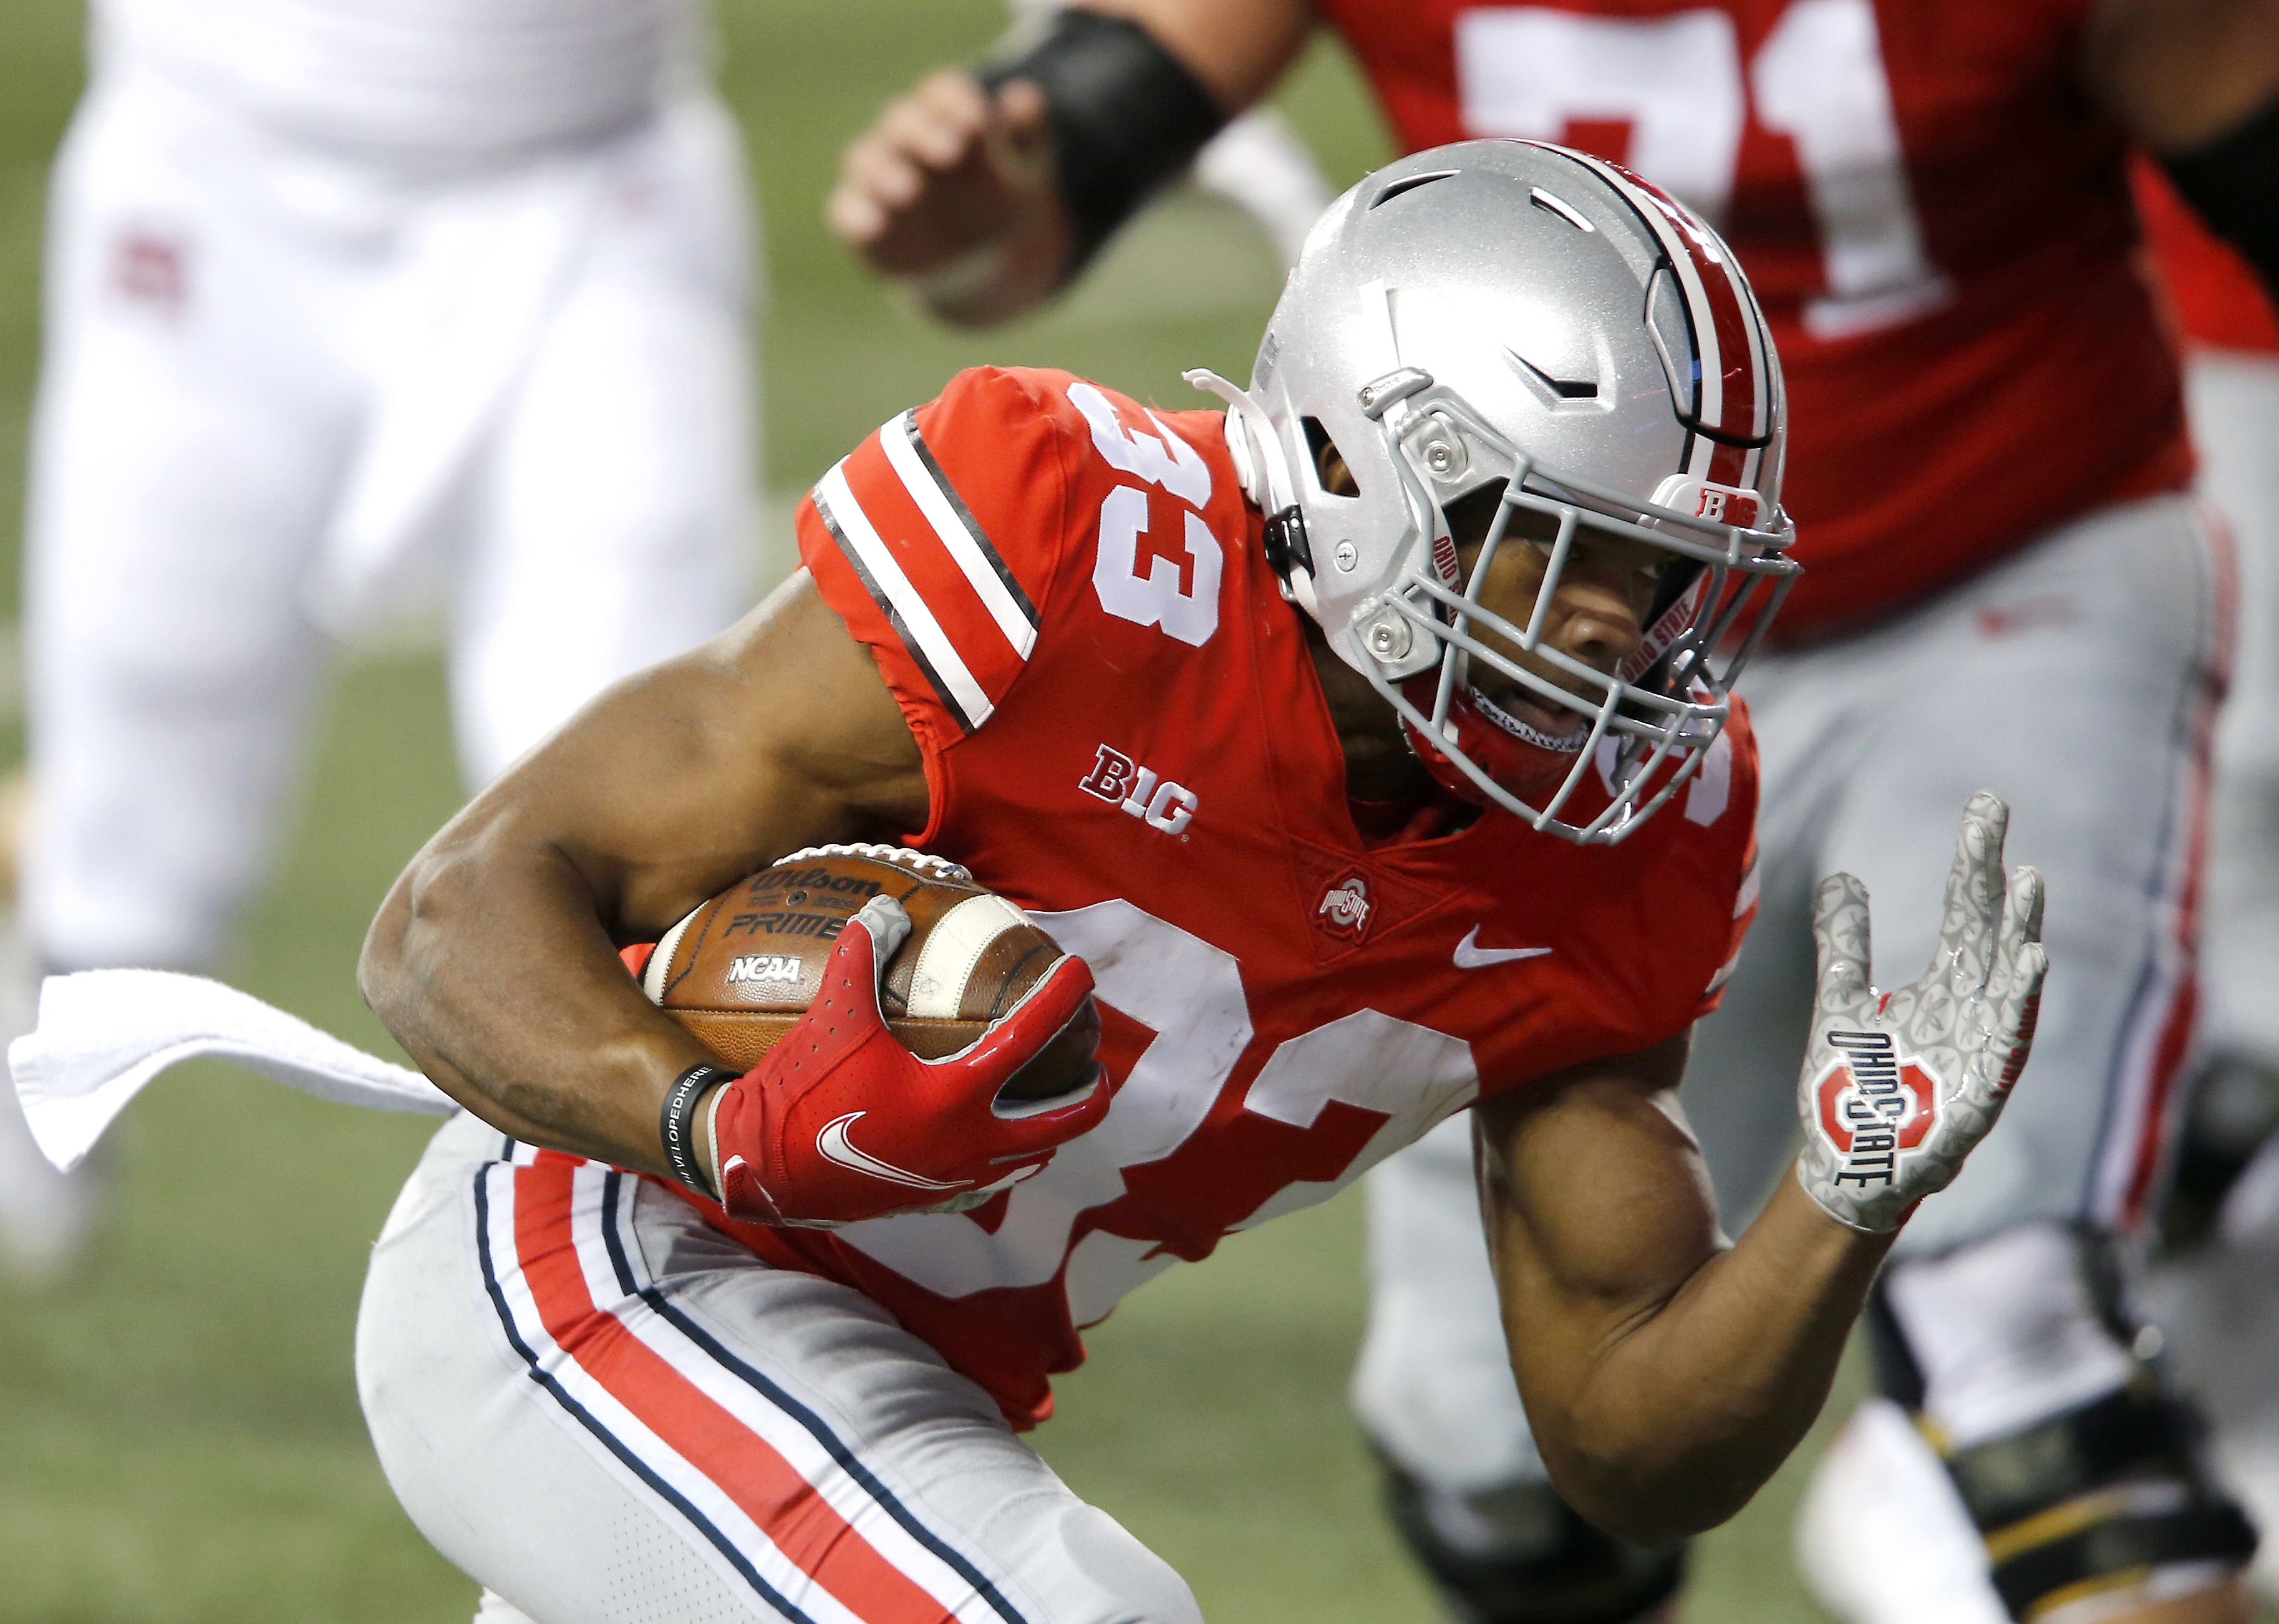 Ohio State wins key top-10 game in college football